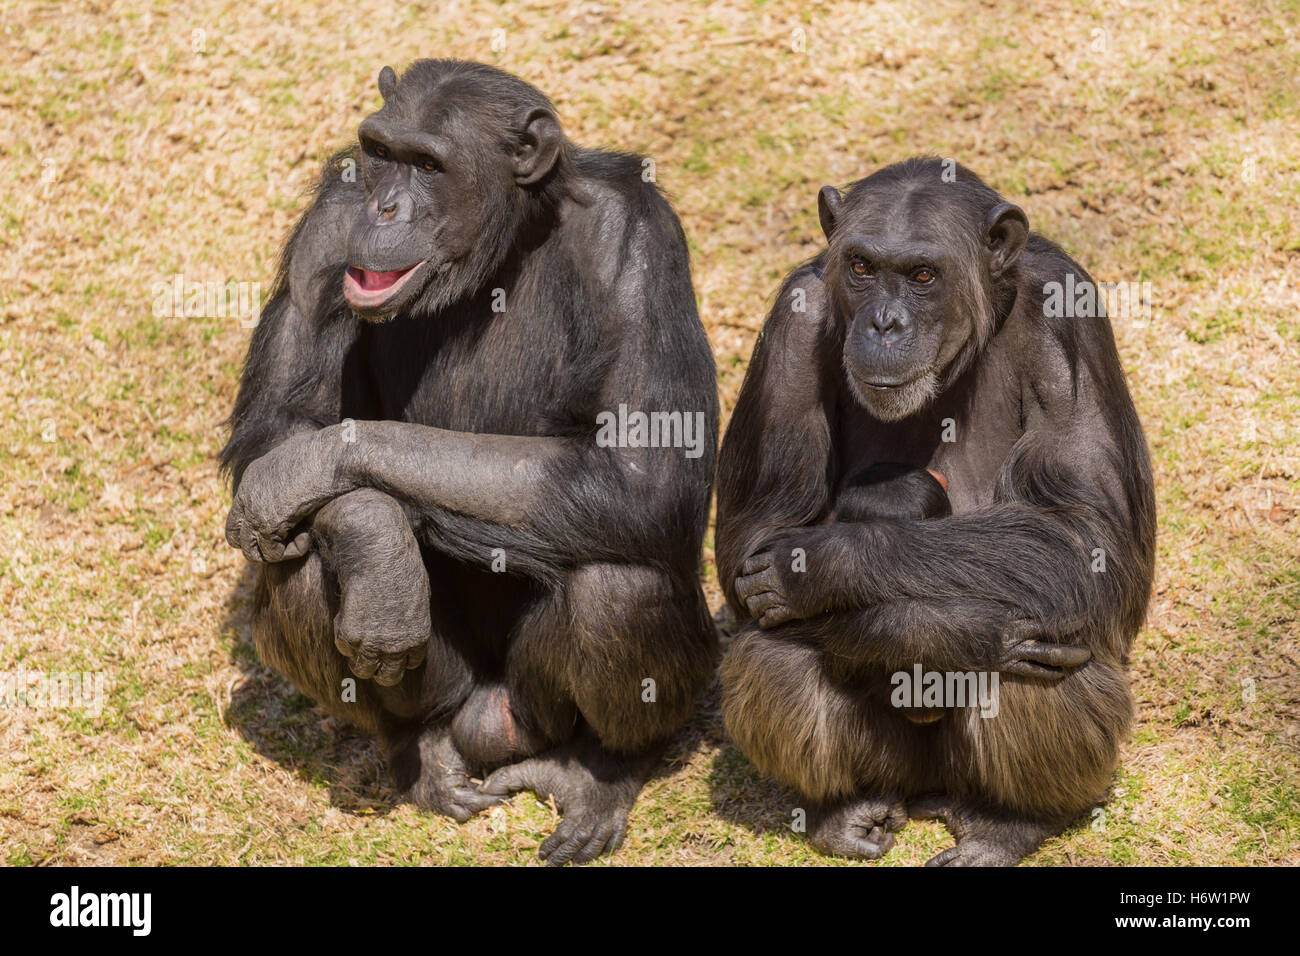 animal africa wildlife safari animal mammal wild monkey black swarthy jetblack deep black wildlife chimpanzee nature - Stock Image